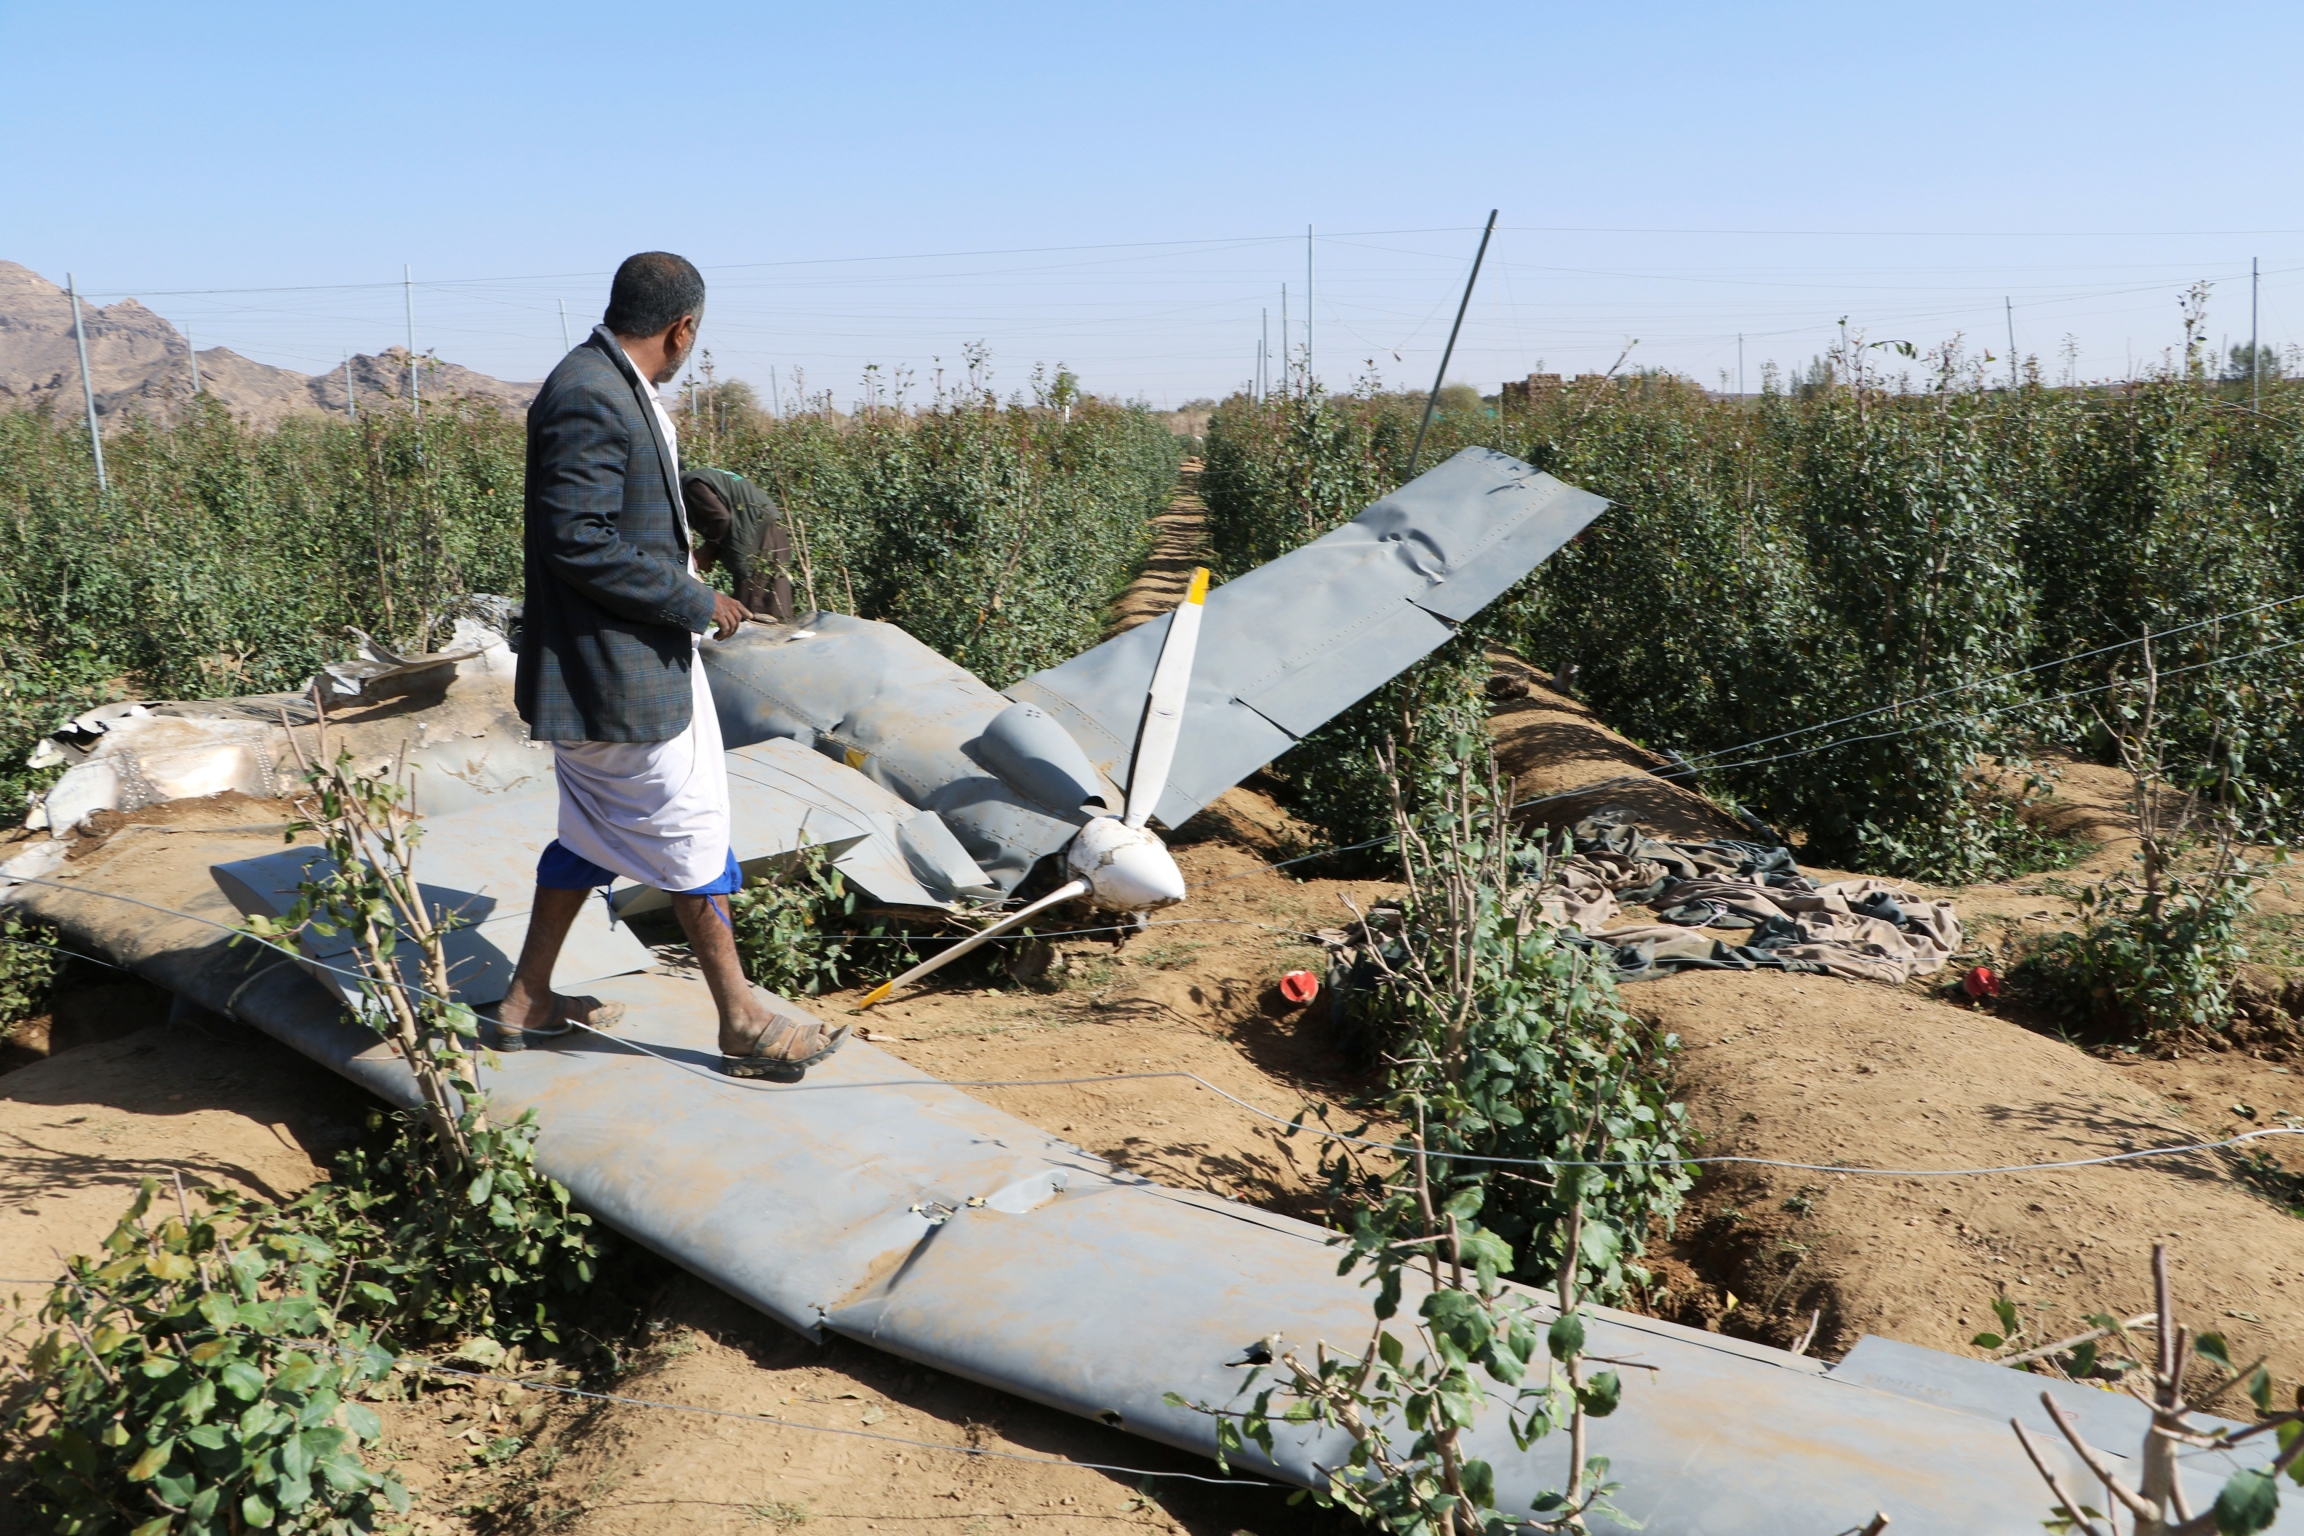 Cheap drones are changing the calculus of war in Yemen